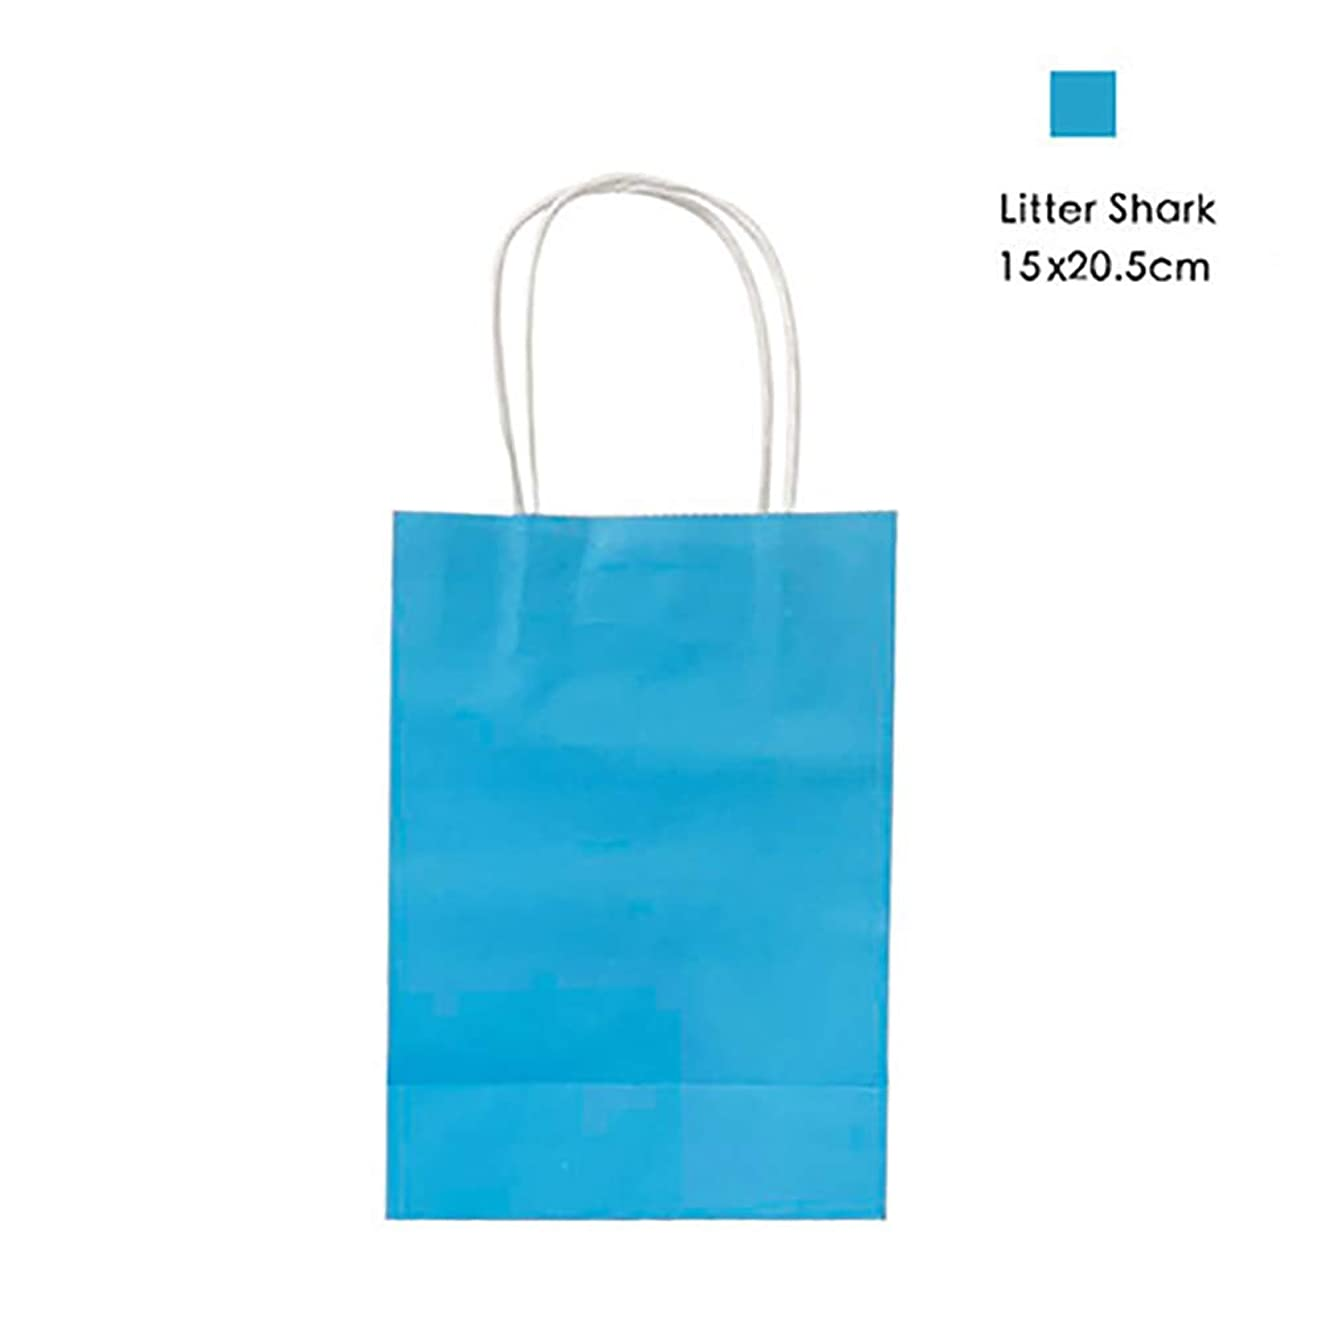 12 Pieces Party Favor Bags Gift Bags Kraft Paper Bags with Handles for Birthday, Tea Party, Wedding, Baby Shower and Party Celebrations - Small, Blue